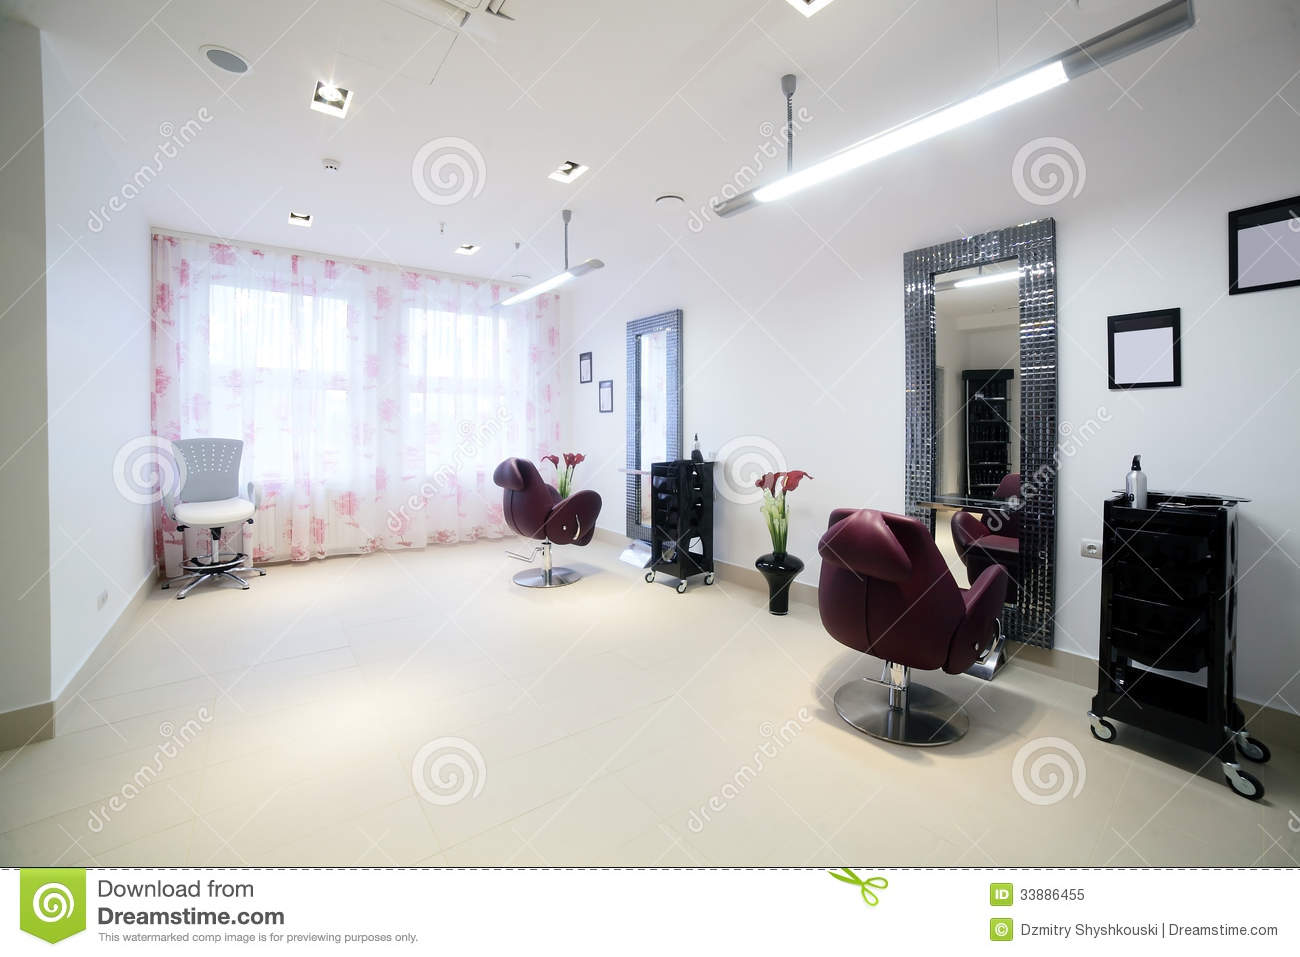 Clean european hair salon royalty free stock photo image for A fresh start beauty salon